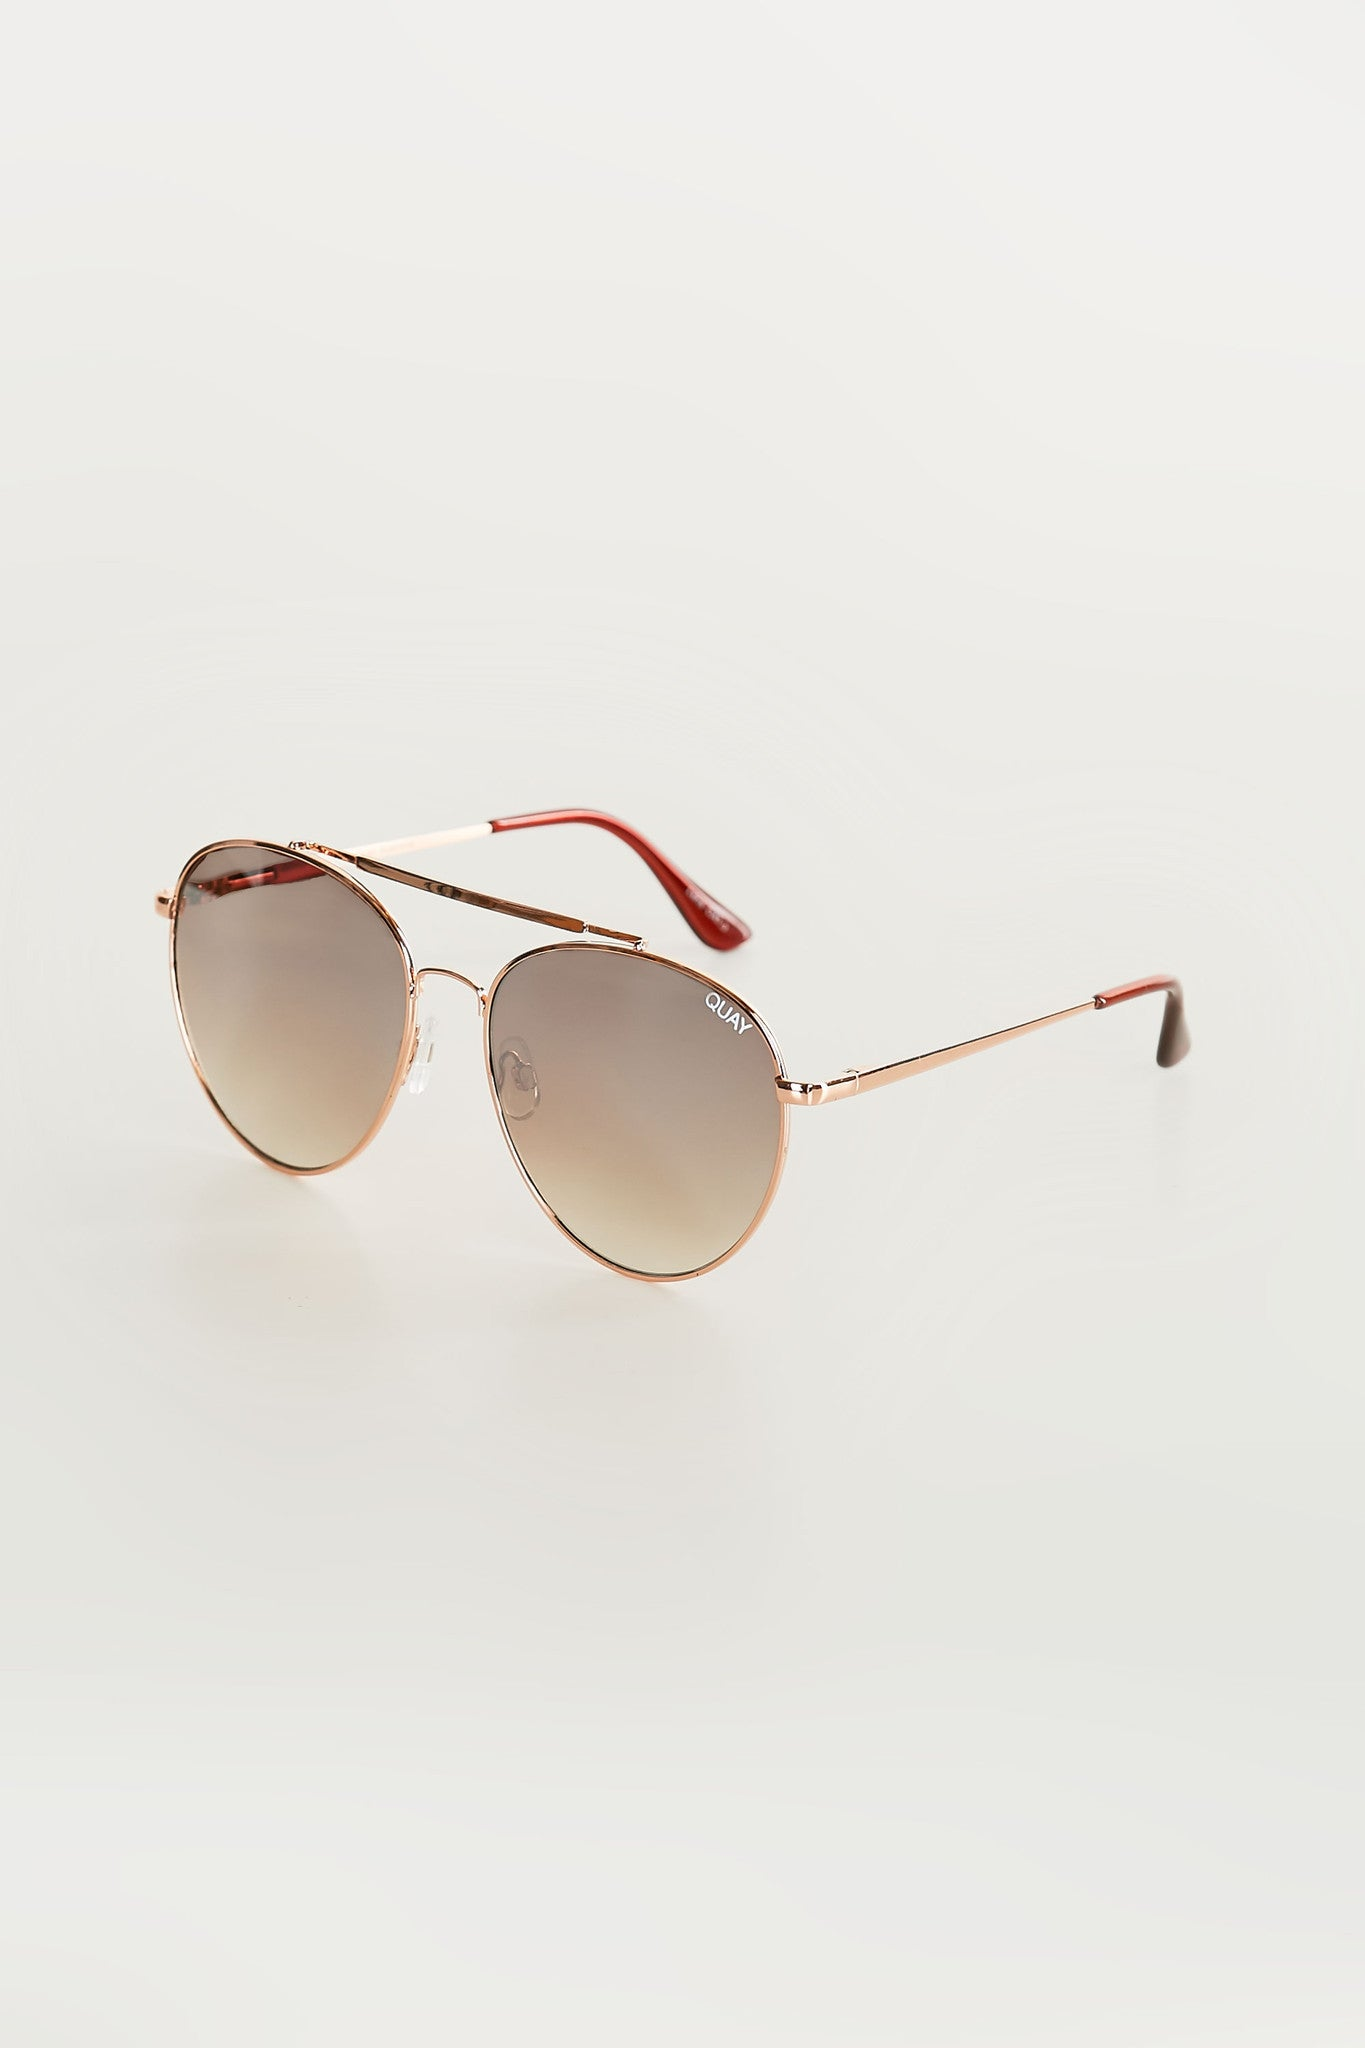 Quay Australia Lickety Split Sunglasses